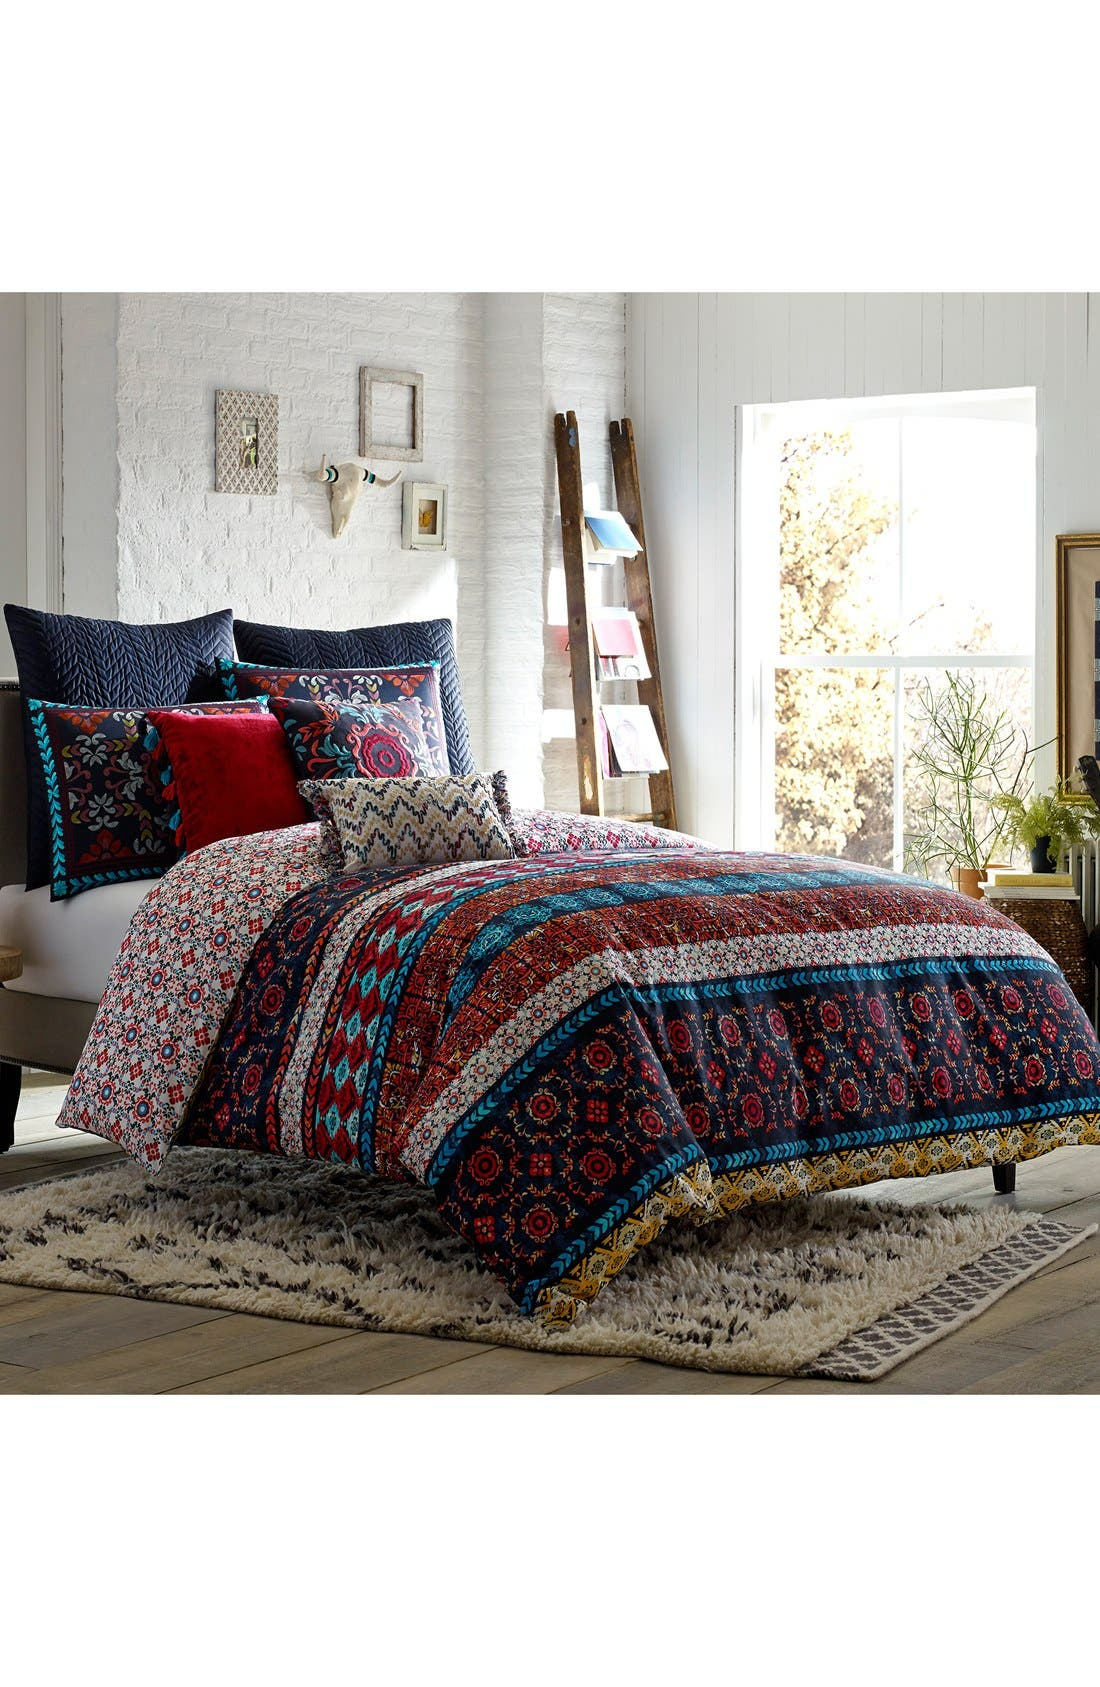 Blissliving Home 'Madero' Bedding Collection